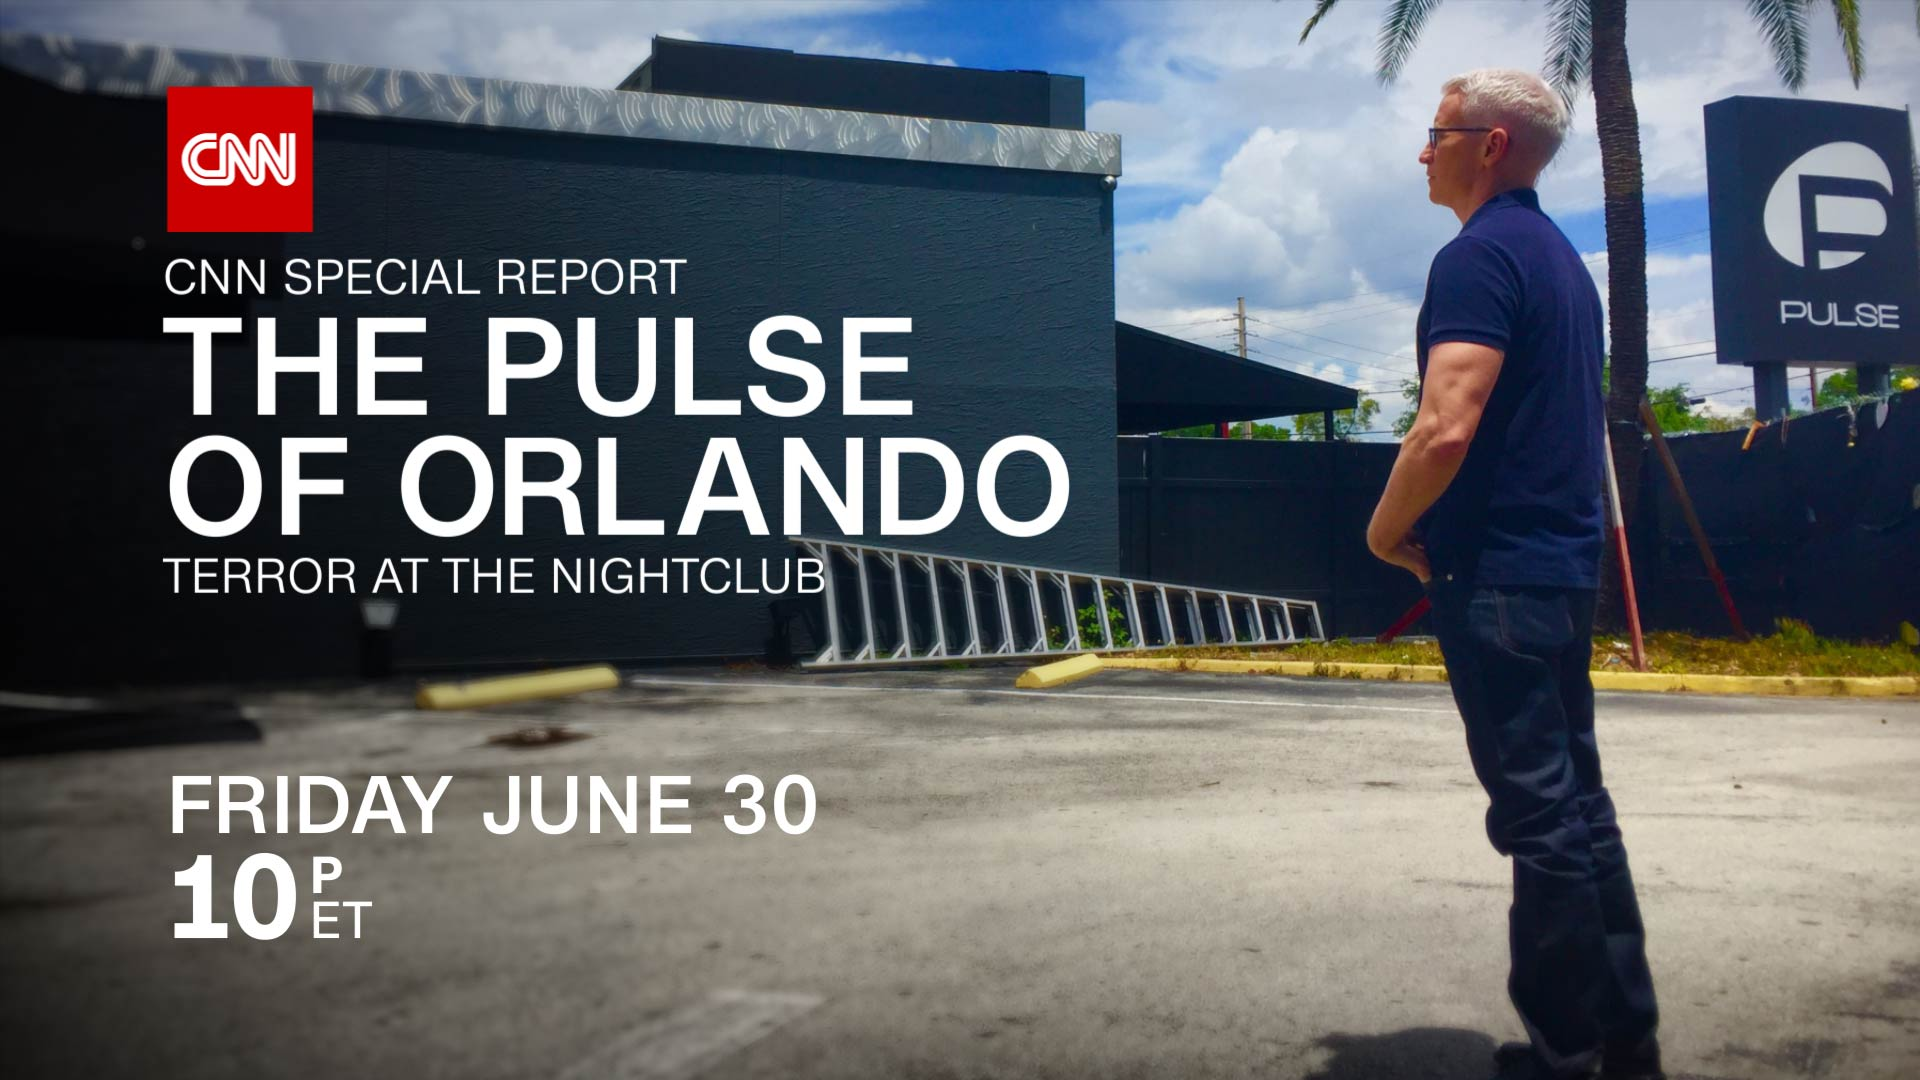 THE PULSE OF ORLANDO: TERROR AT THE NIGHTCLUB